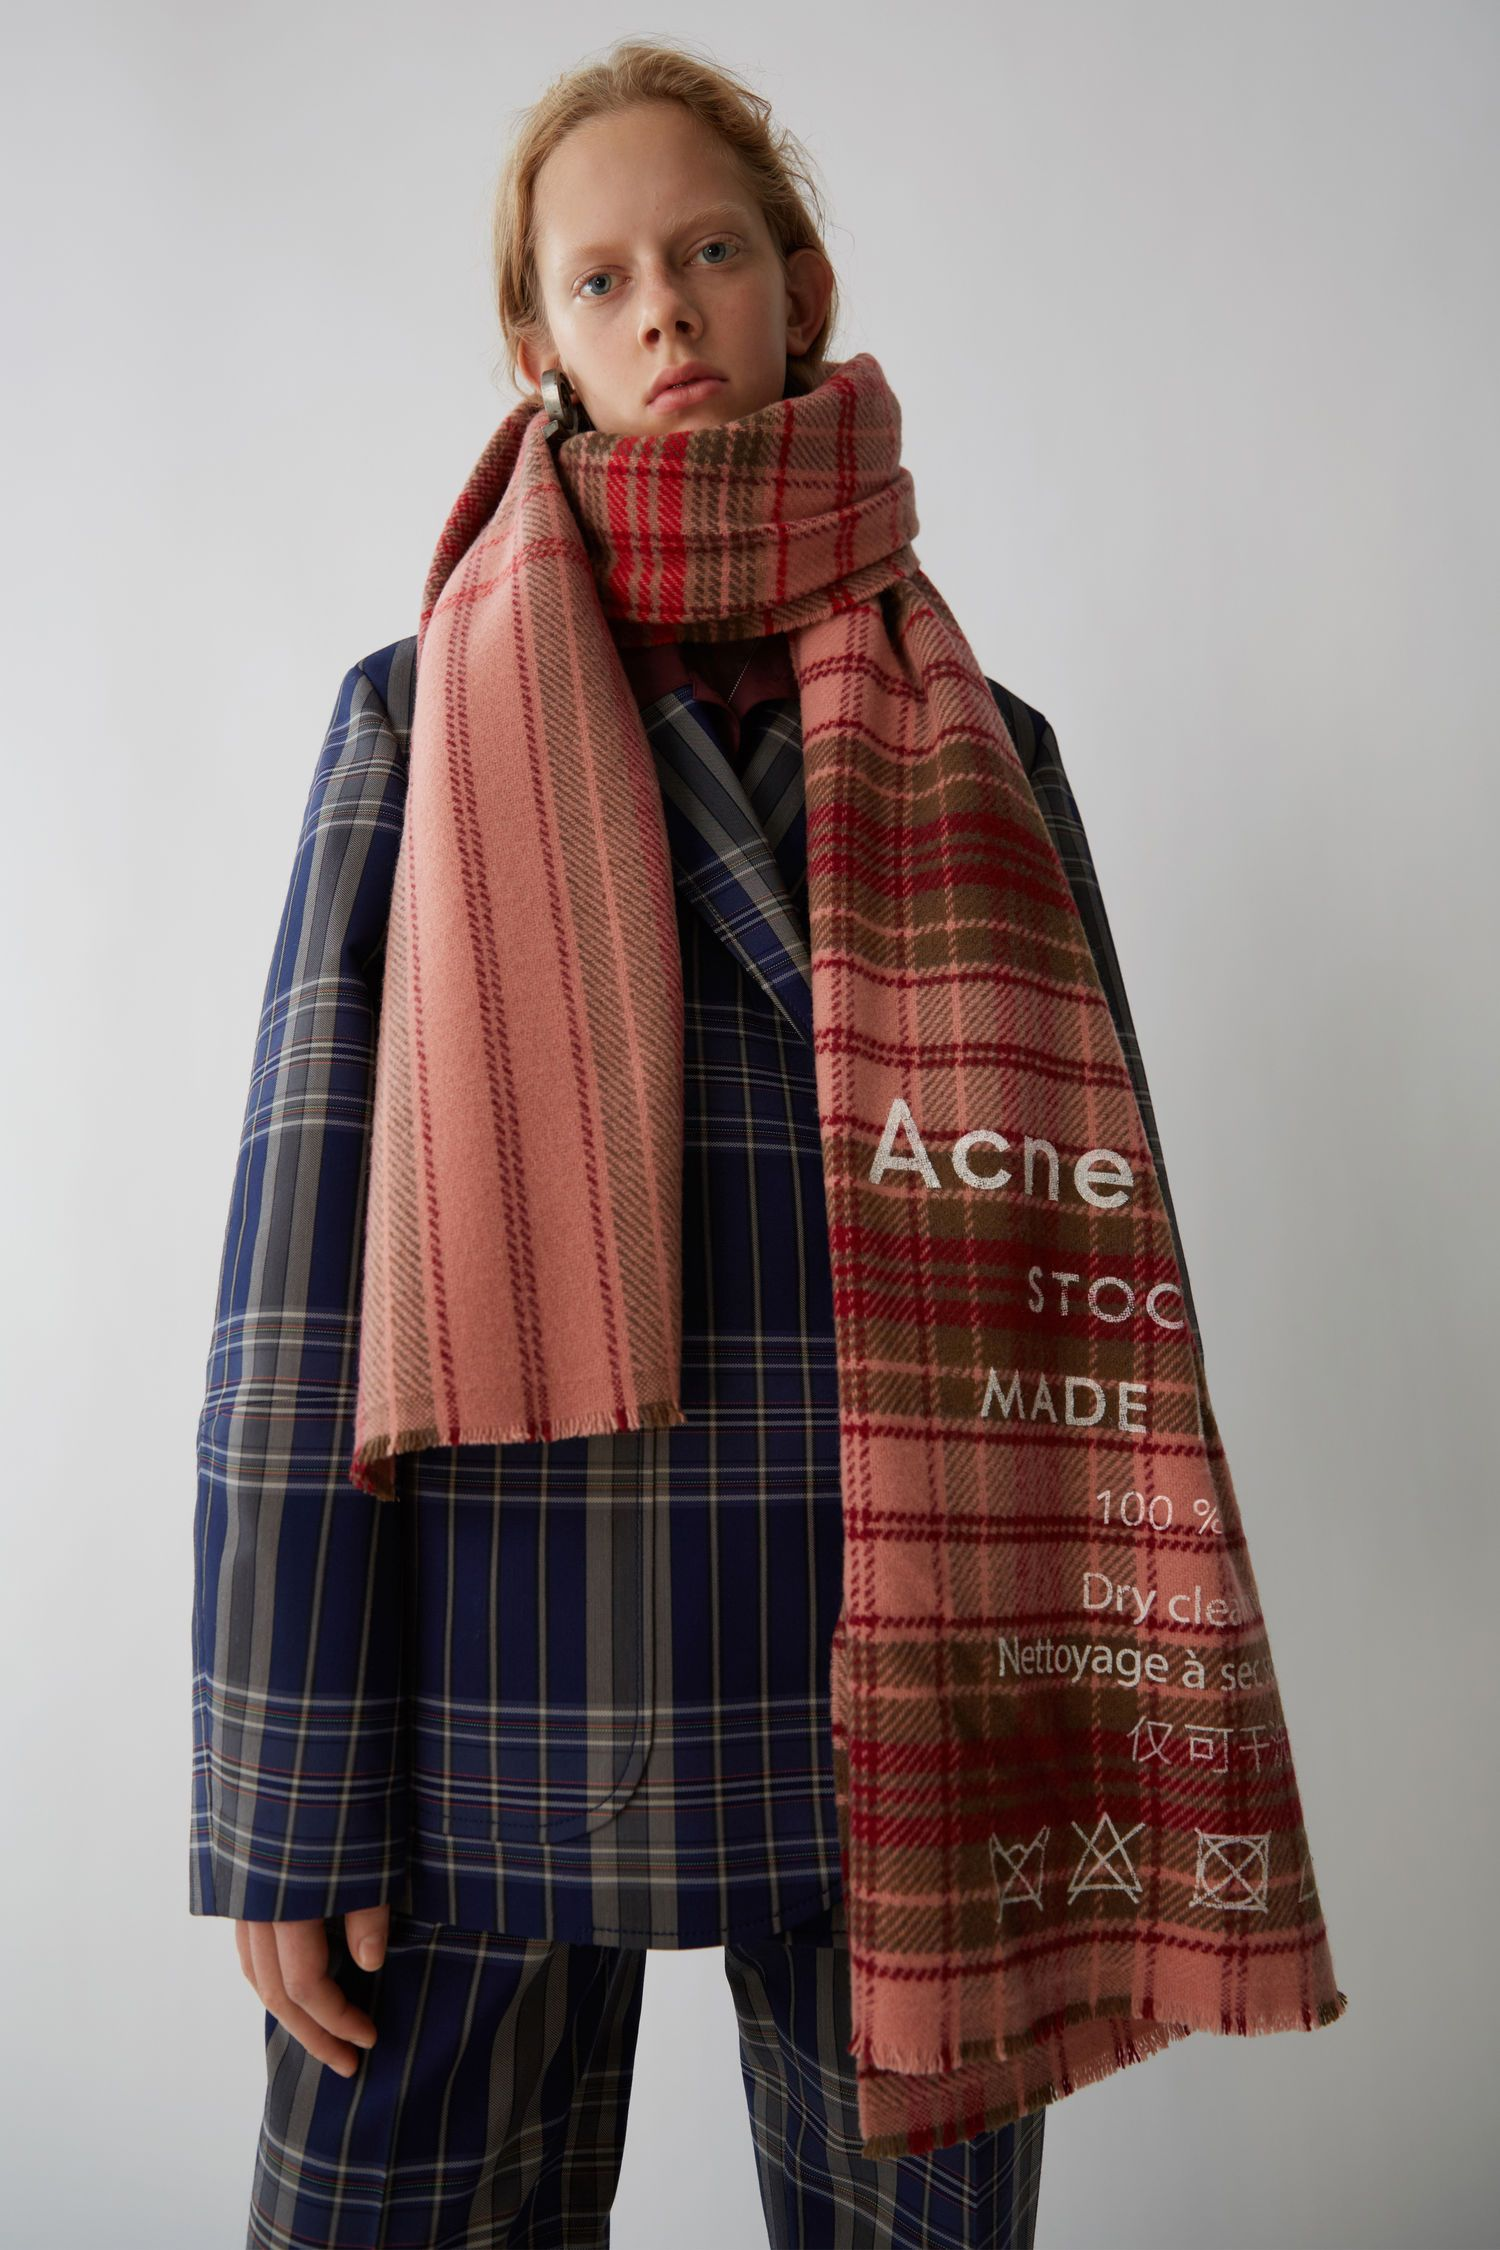 a04fcacd609 Cassiar Check Pale Pink / Camel Check | like | Acne scarf, Pale pink ...